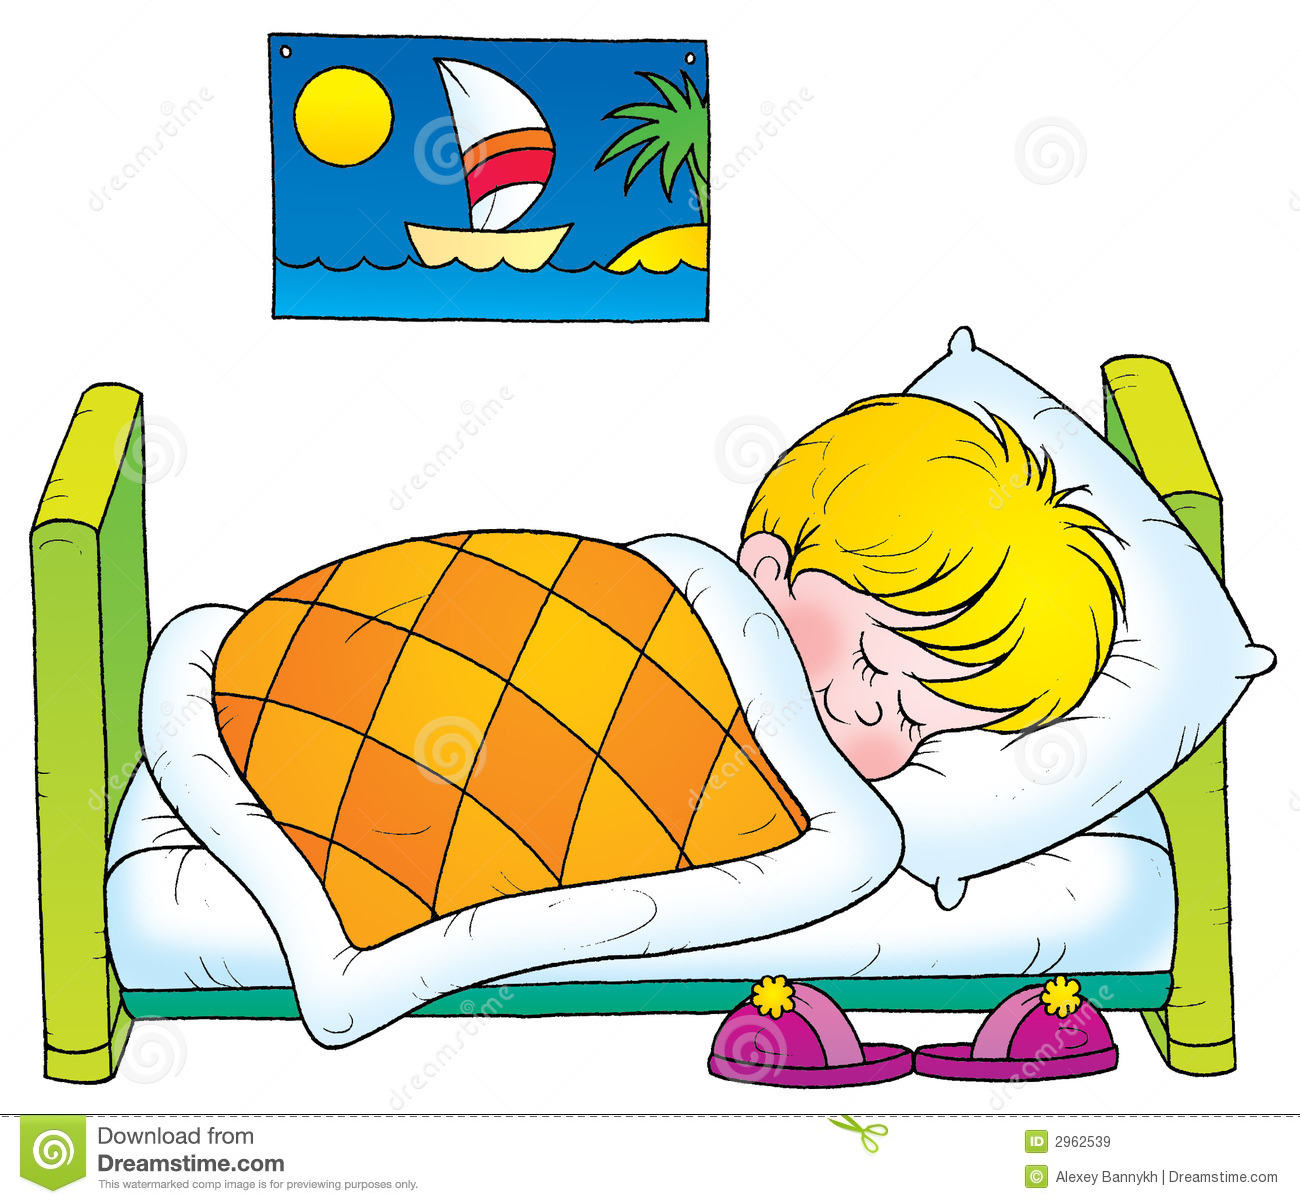 hight resolution of 1300x1204 bed clipart dream